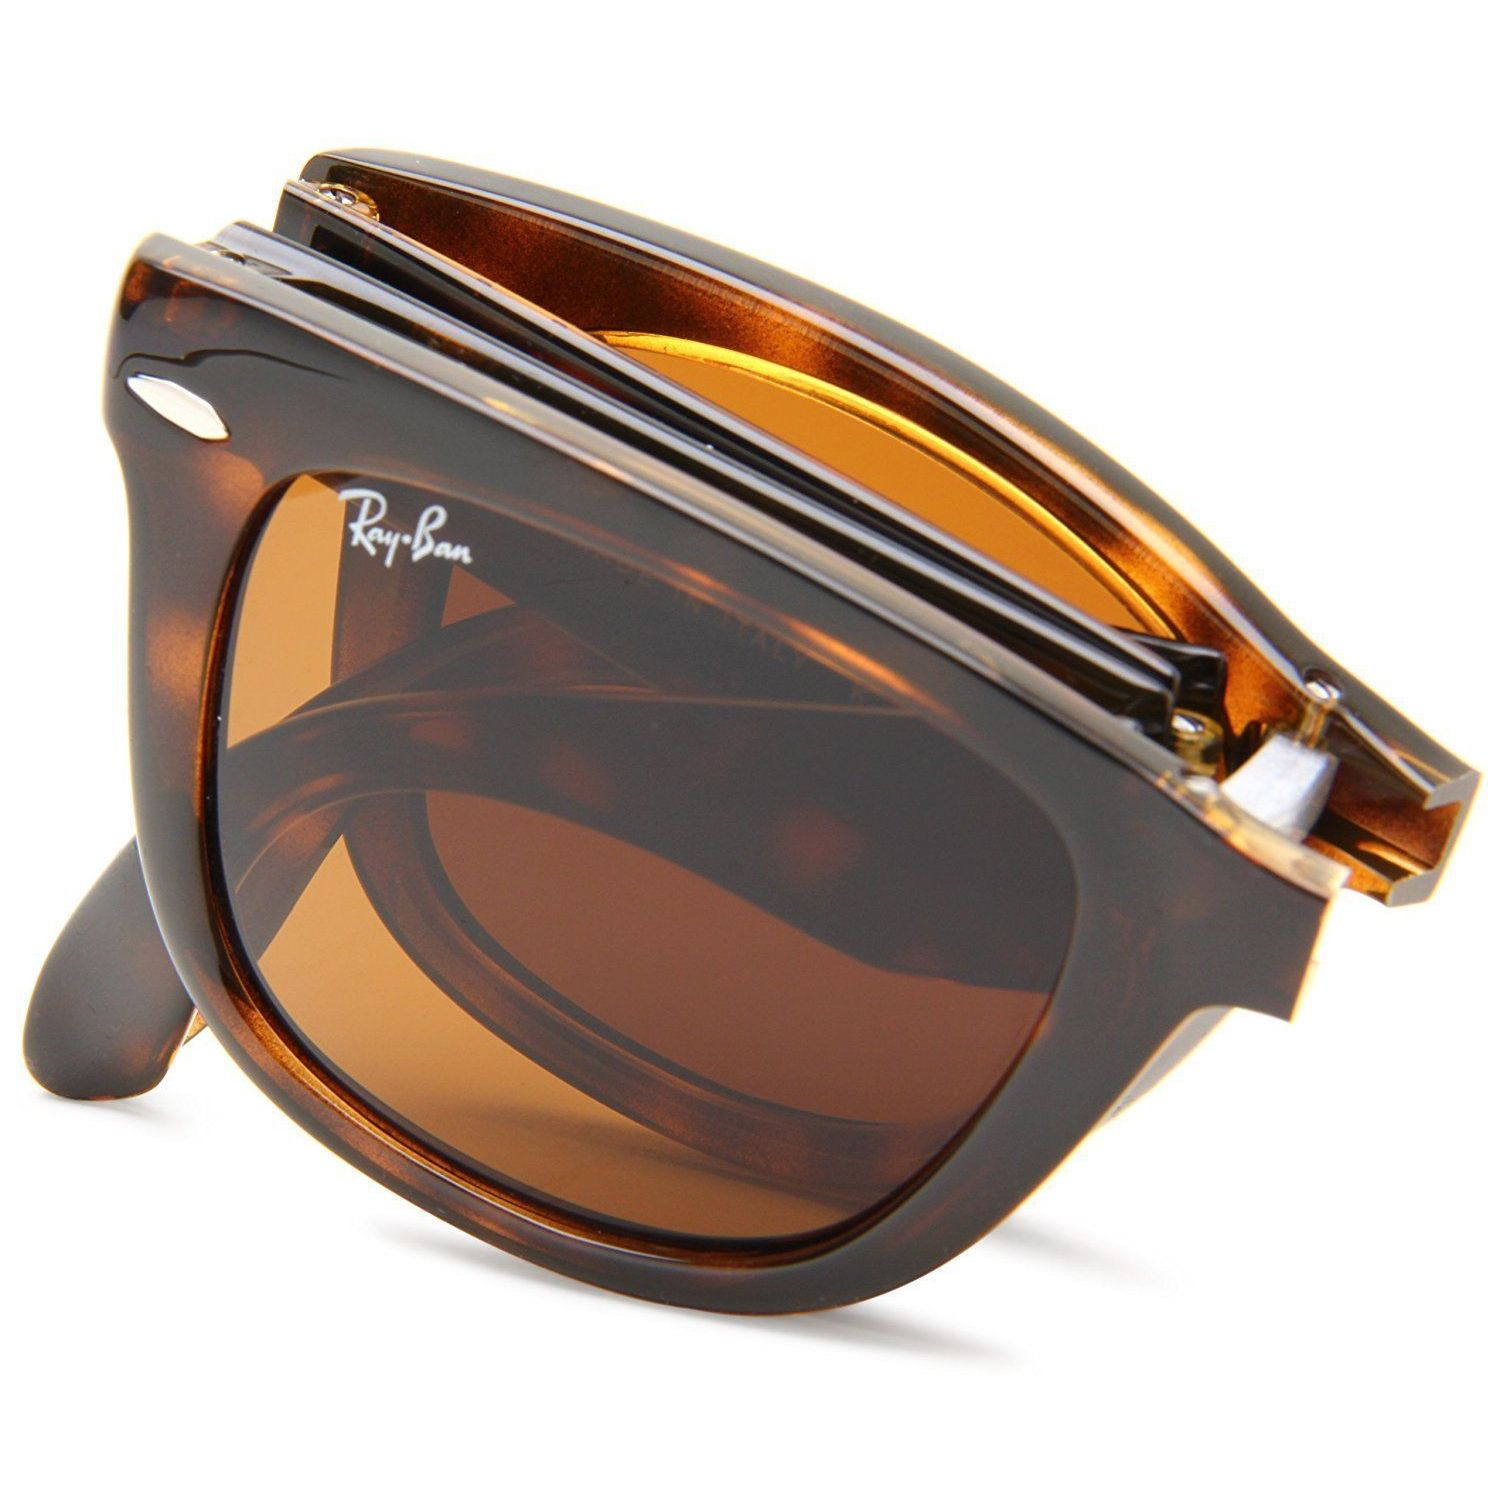 9fc398a893b Shop Ray-Ban Wayfarer Folding RB4105 710 51 Unisex Tortoise Frame Light  Brown Gradient 54mm Lens Sunglasses - Free Shipping Today - Overstock -  15288001